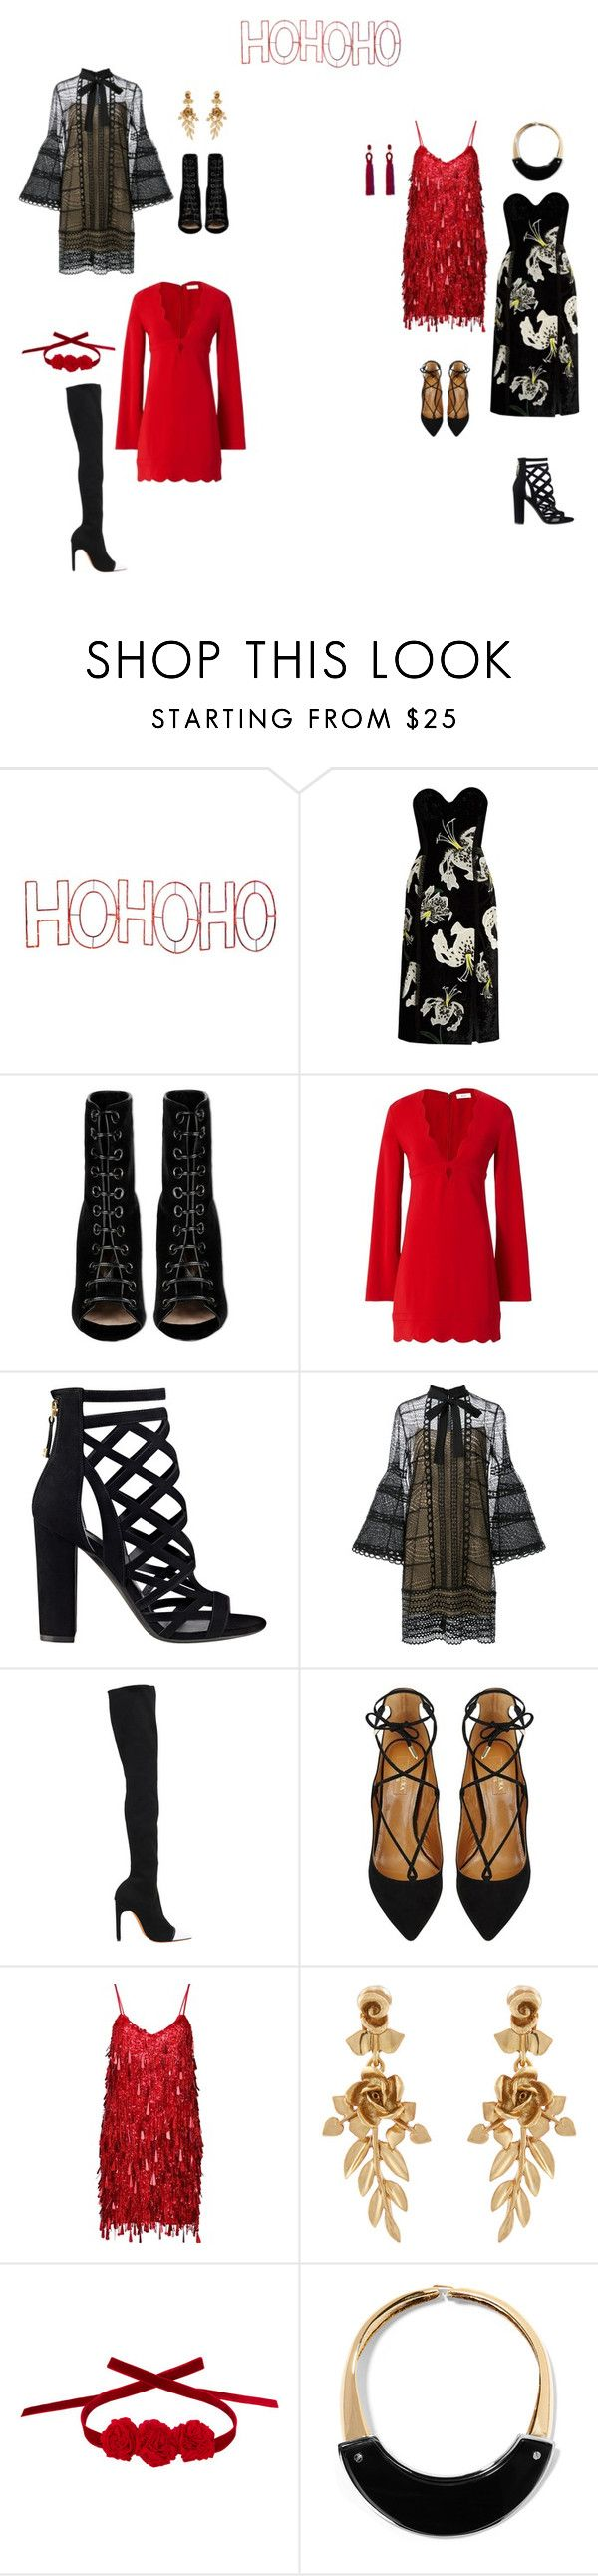 """korporative"" by neiman-bags on Polyvore featuring мода, Mr. Christmas, Erdem, Barbara Bui, A.L.C., GUESS, Carolina Herrera, Givenchy, Aquazzura и Ashish"